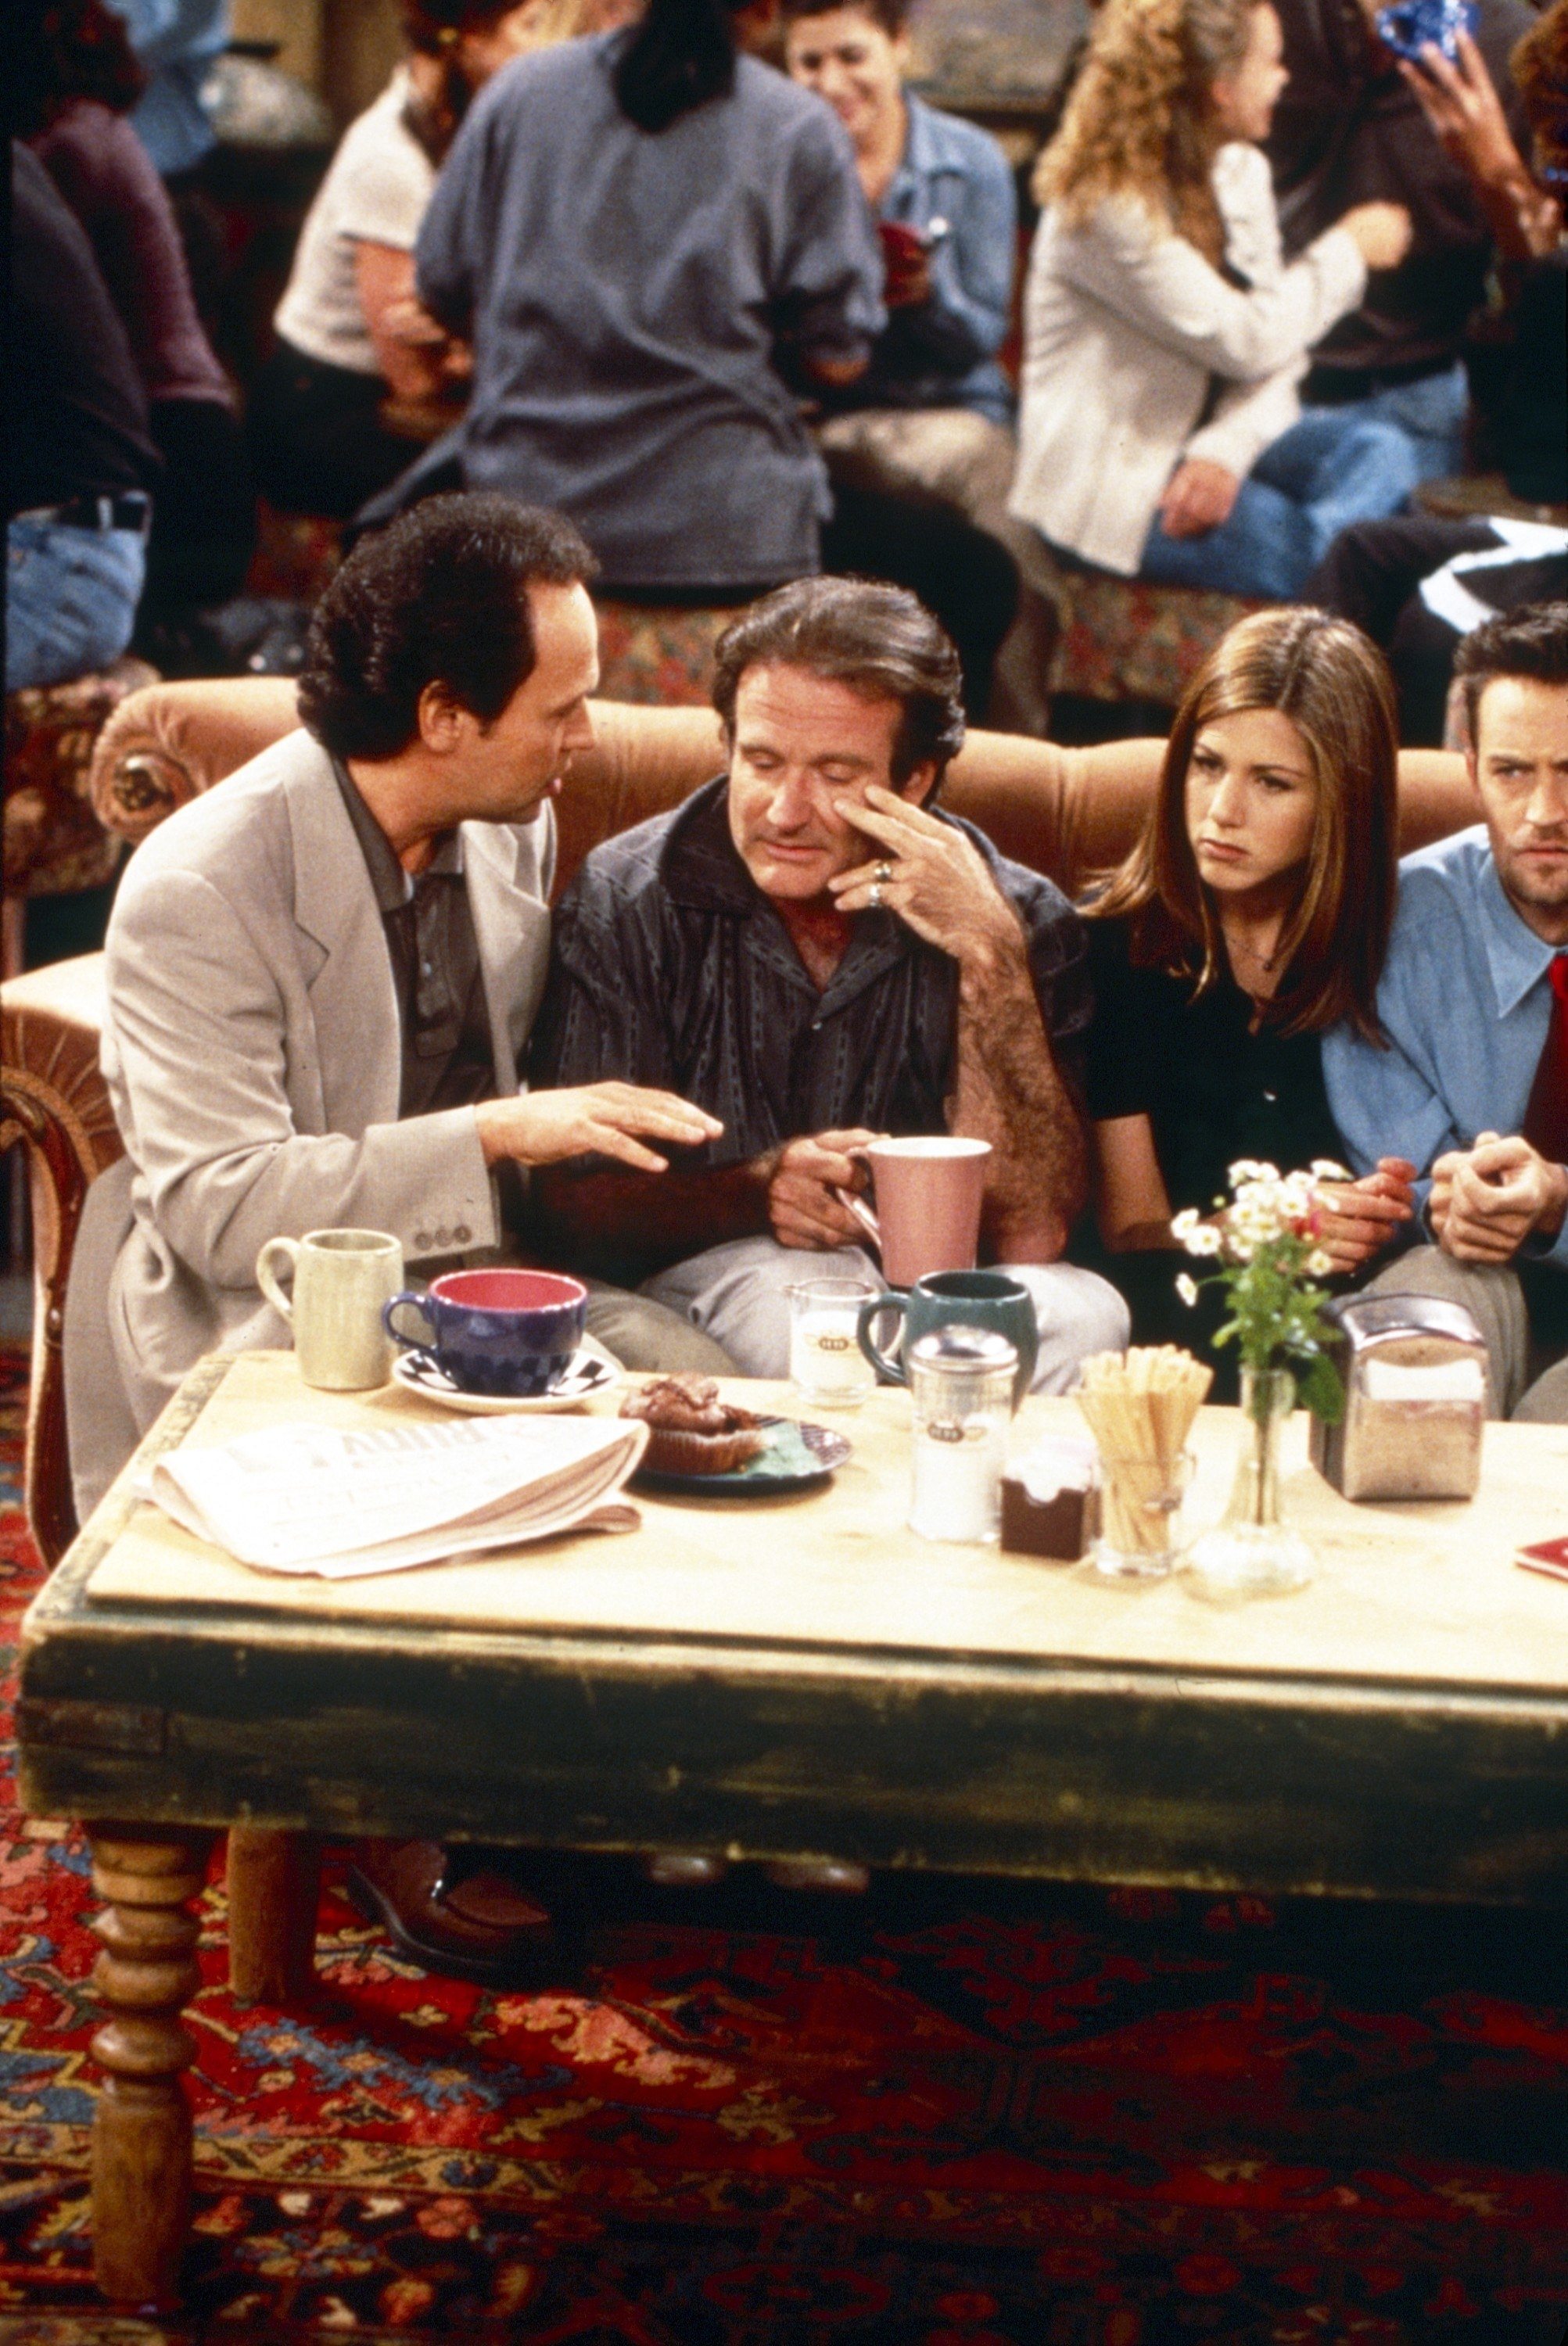 Billy Crystal and Robin Williams on the couch next to the Friends on Friends